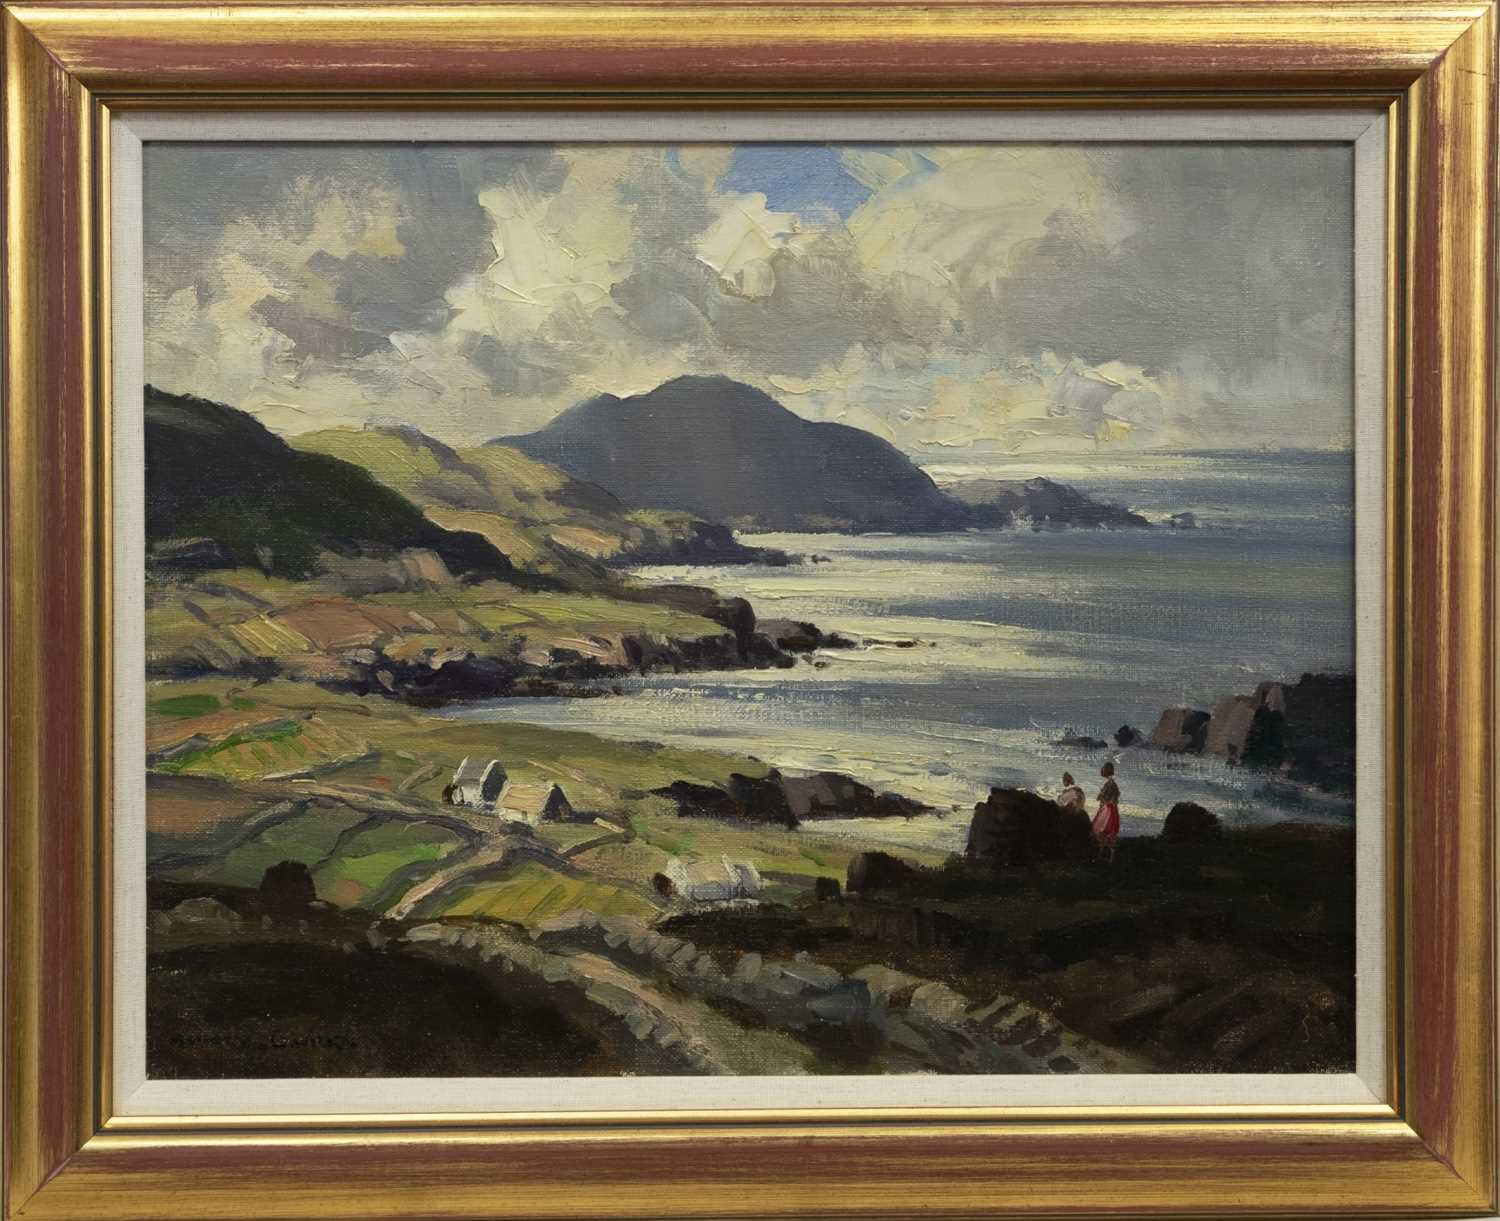 Lot 58 - EVENING LIGHT, BALLINSKELLIGS BAY, AN OIL BY MAURICE CANNING WILKS